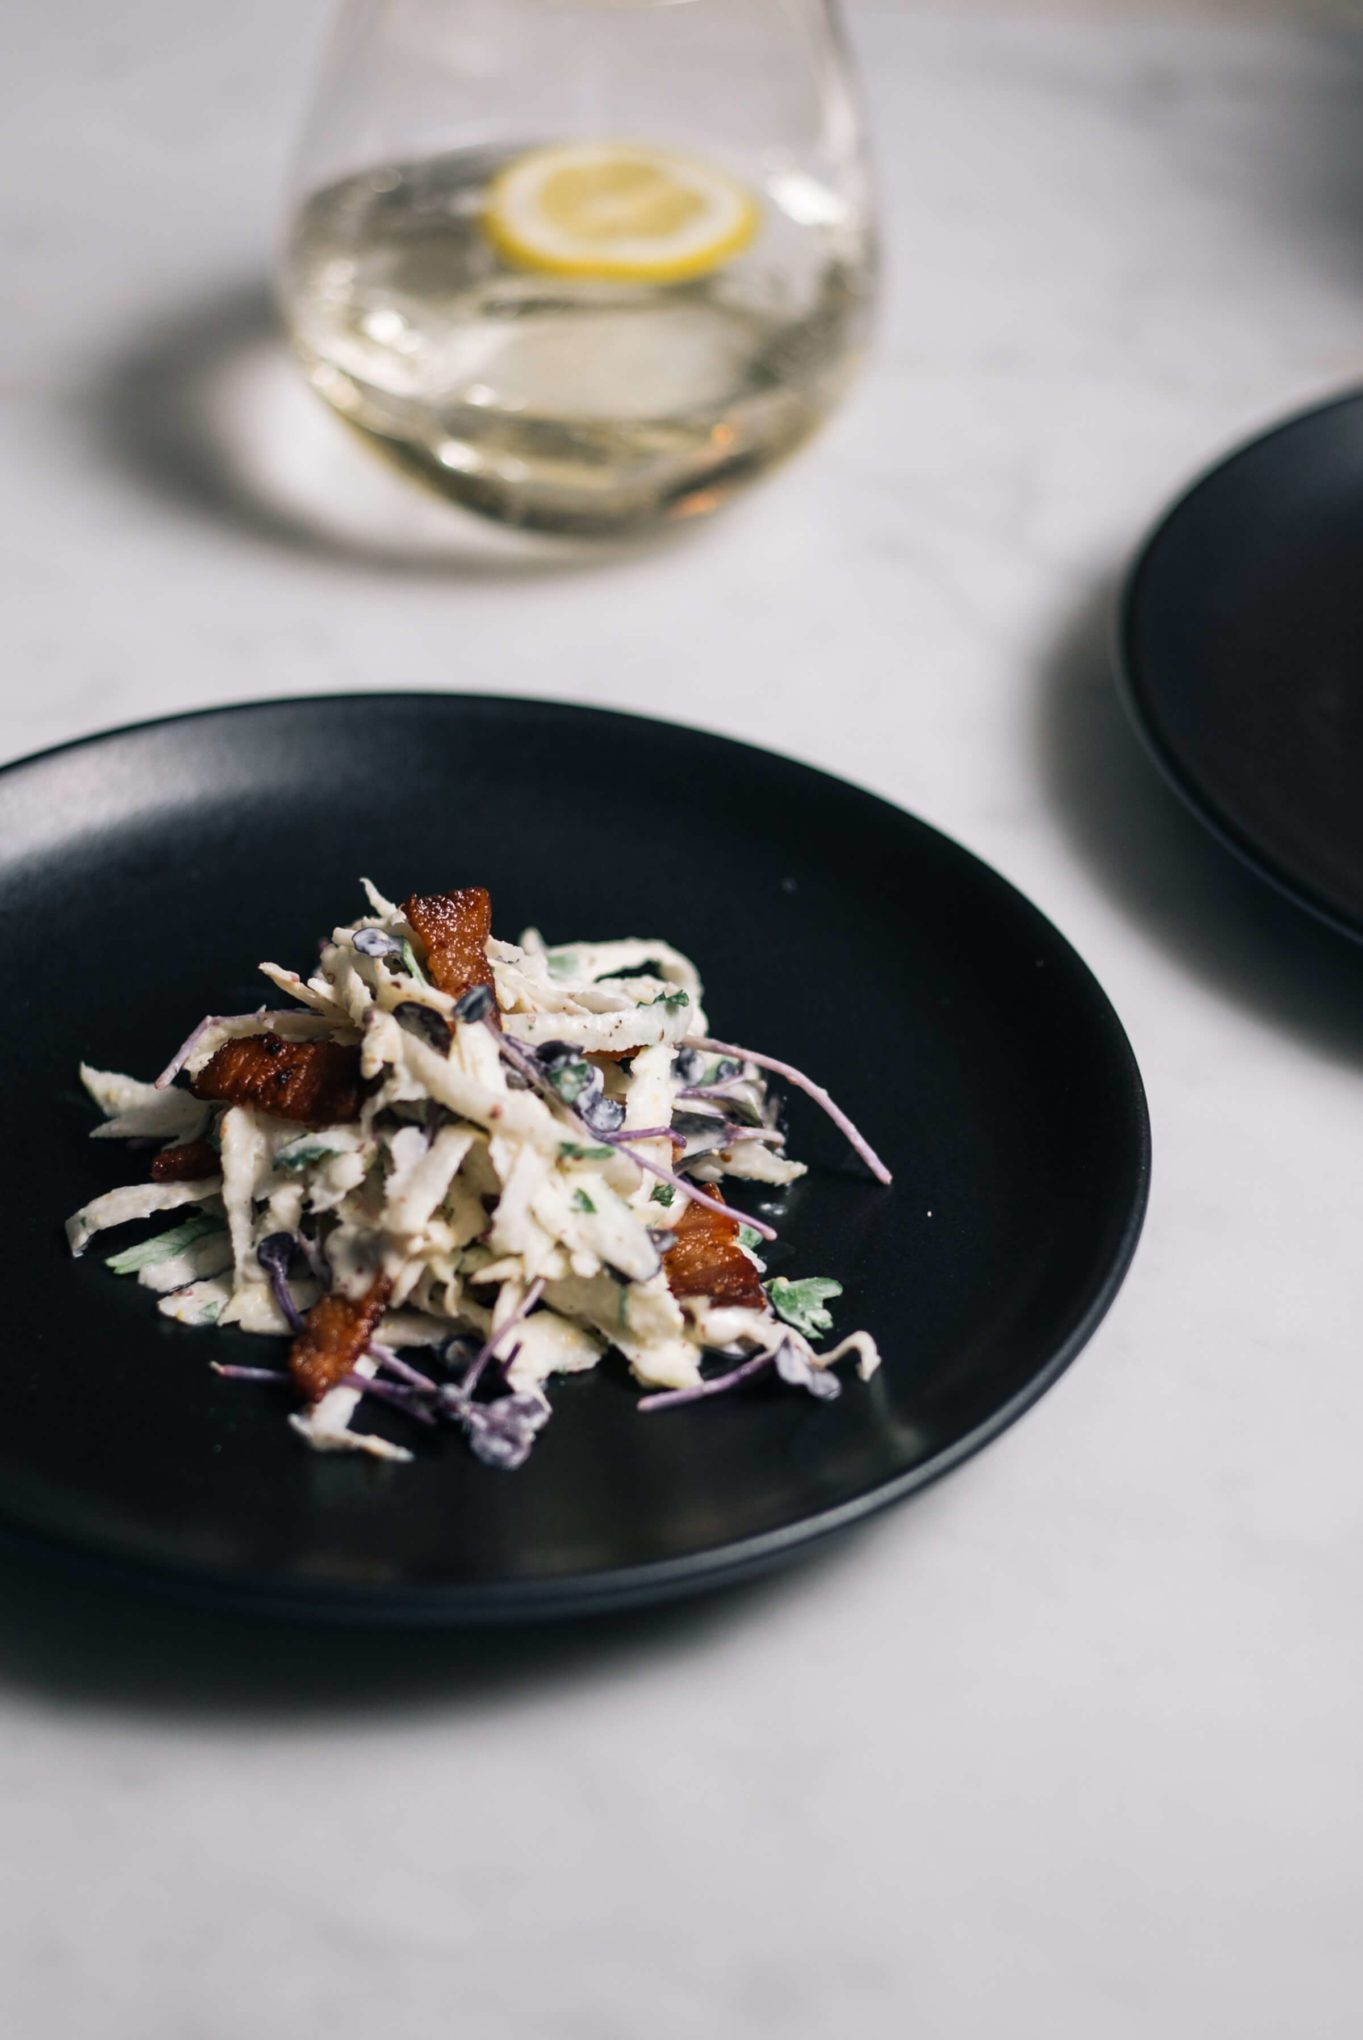 Celeriac and Bacon Salad made by the taste sf